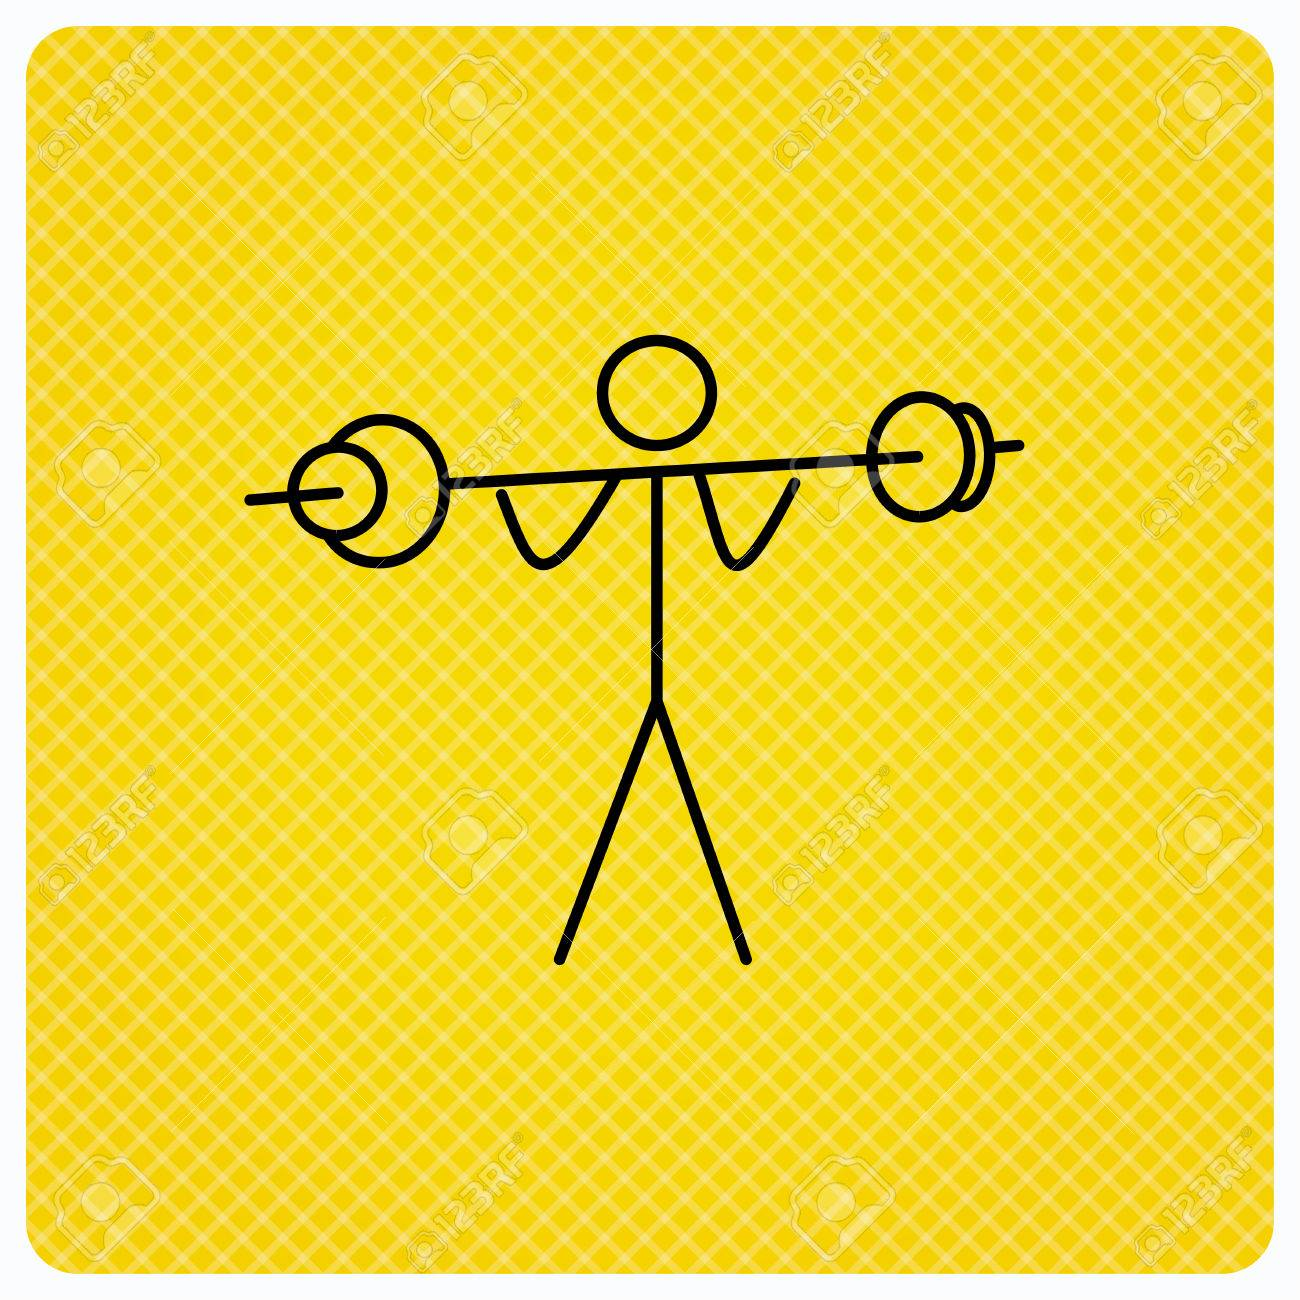 Weightlifting icon  Heavy fitness sign  Muscular workout symbol